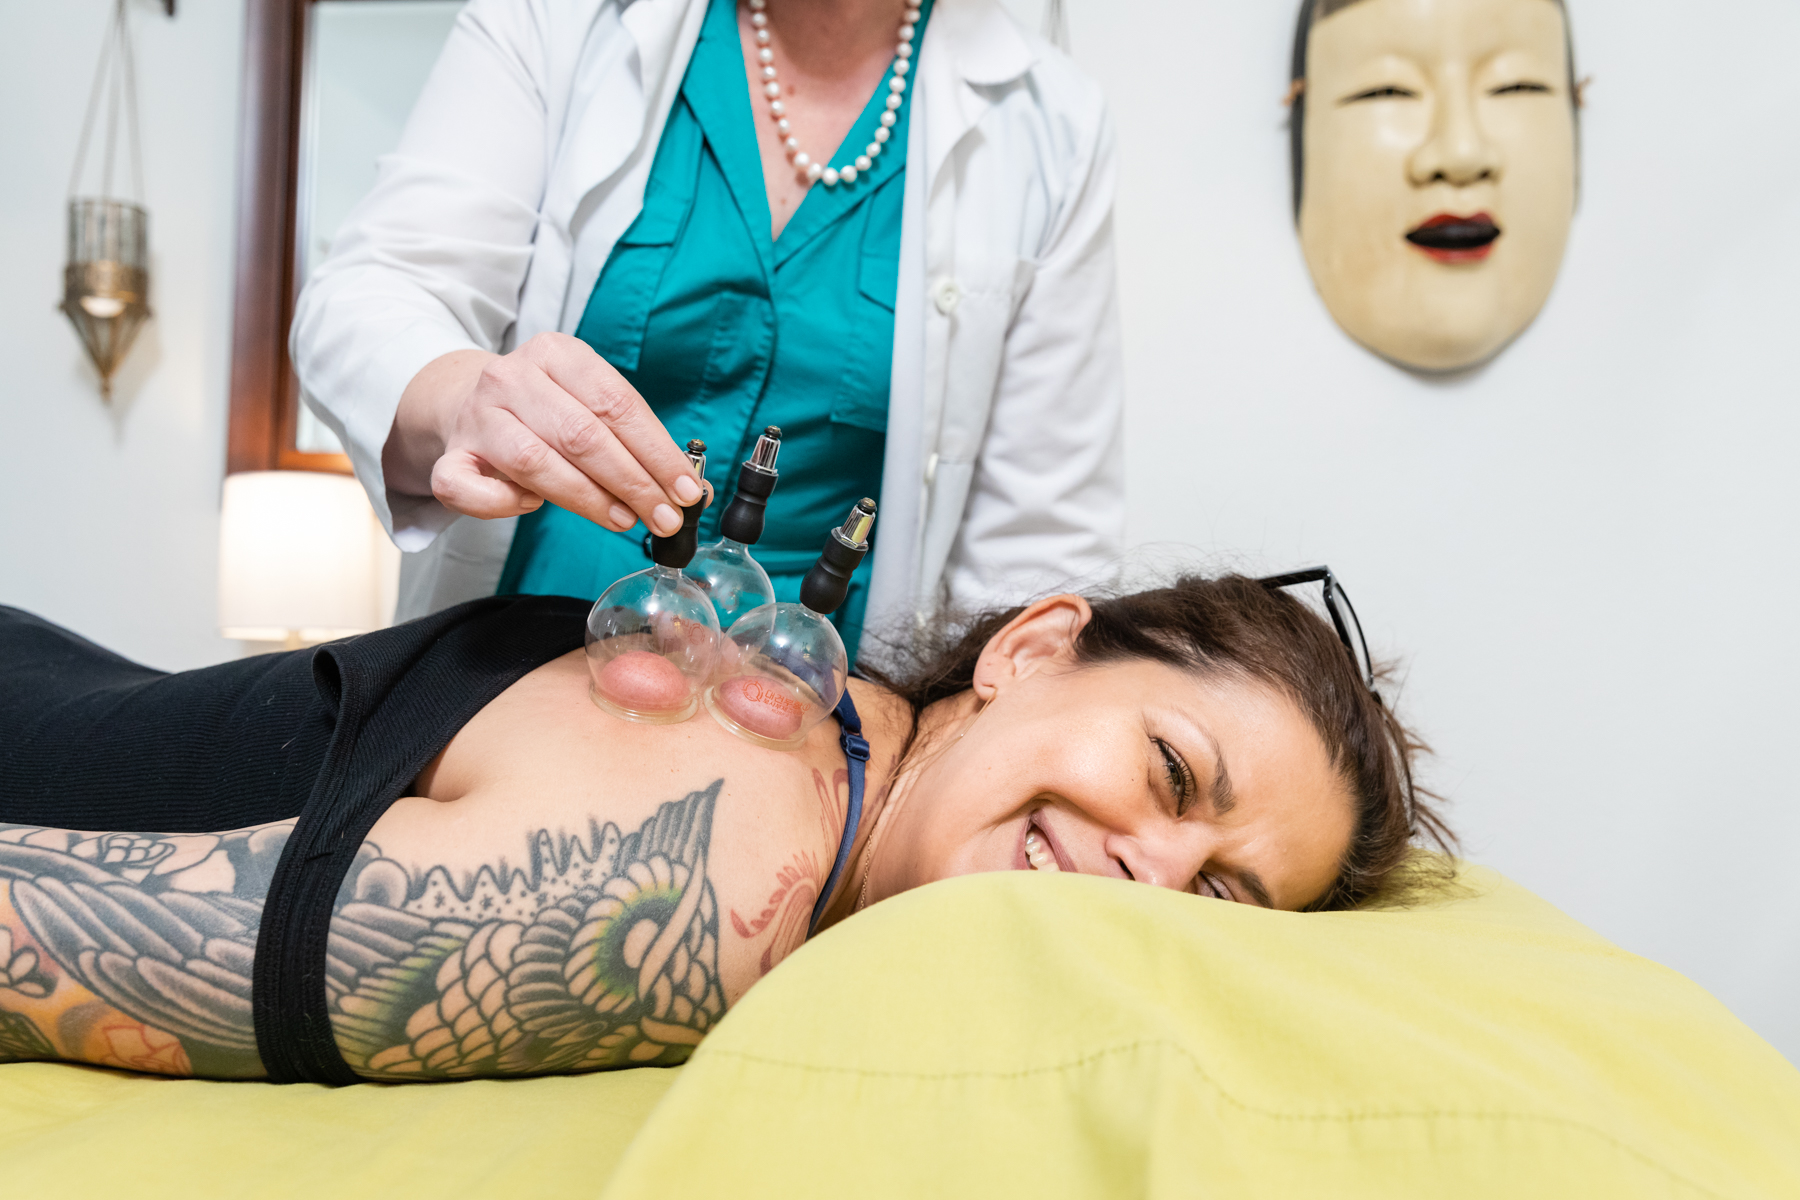 Kymberlie Landgraf Lac applying cupping to patient